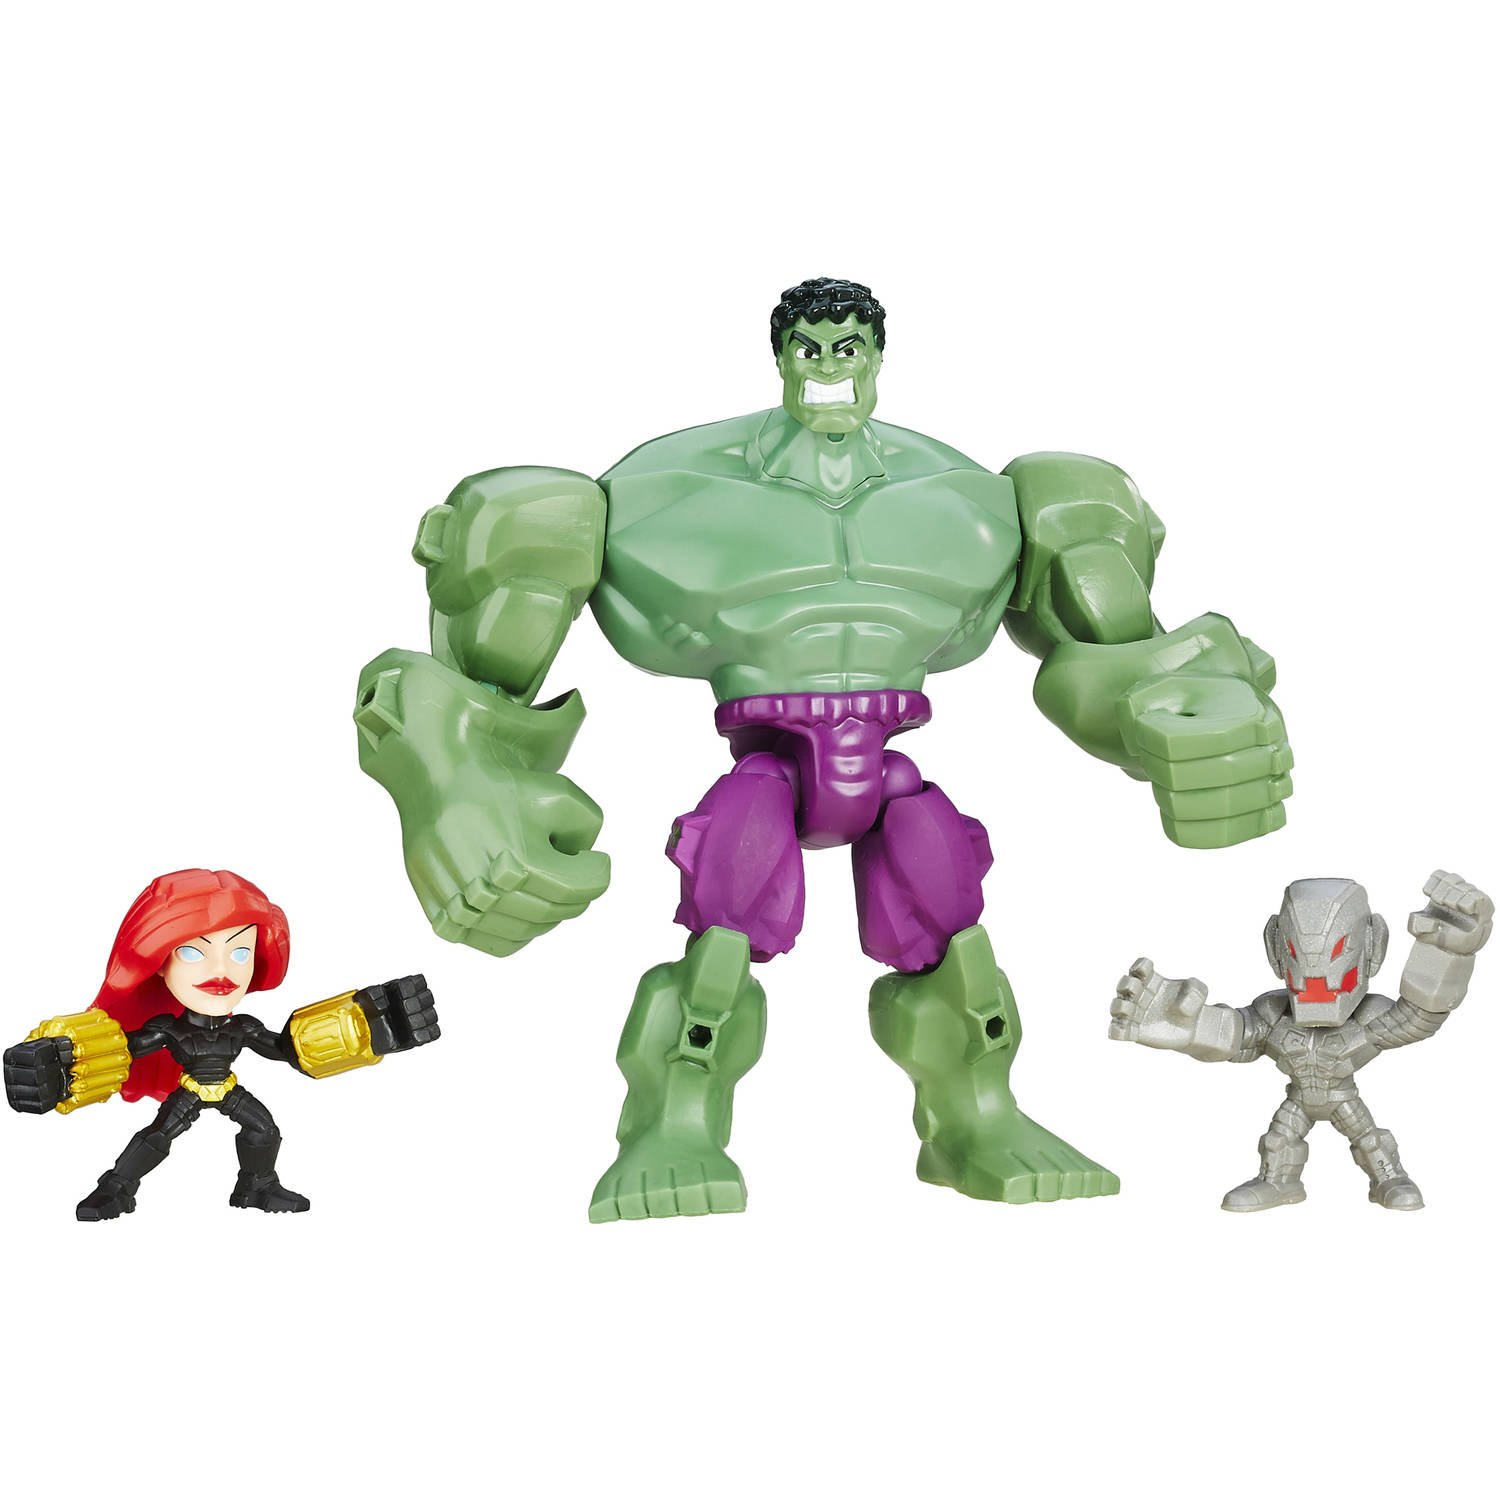 Marvel Super Hero Mashers Hulk Smash Force Figure Set